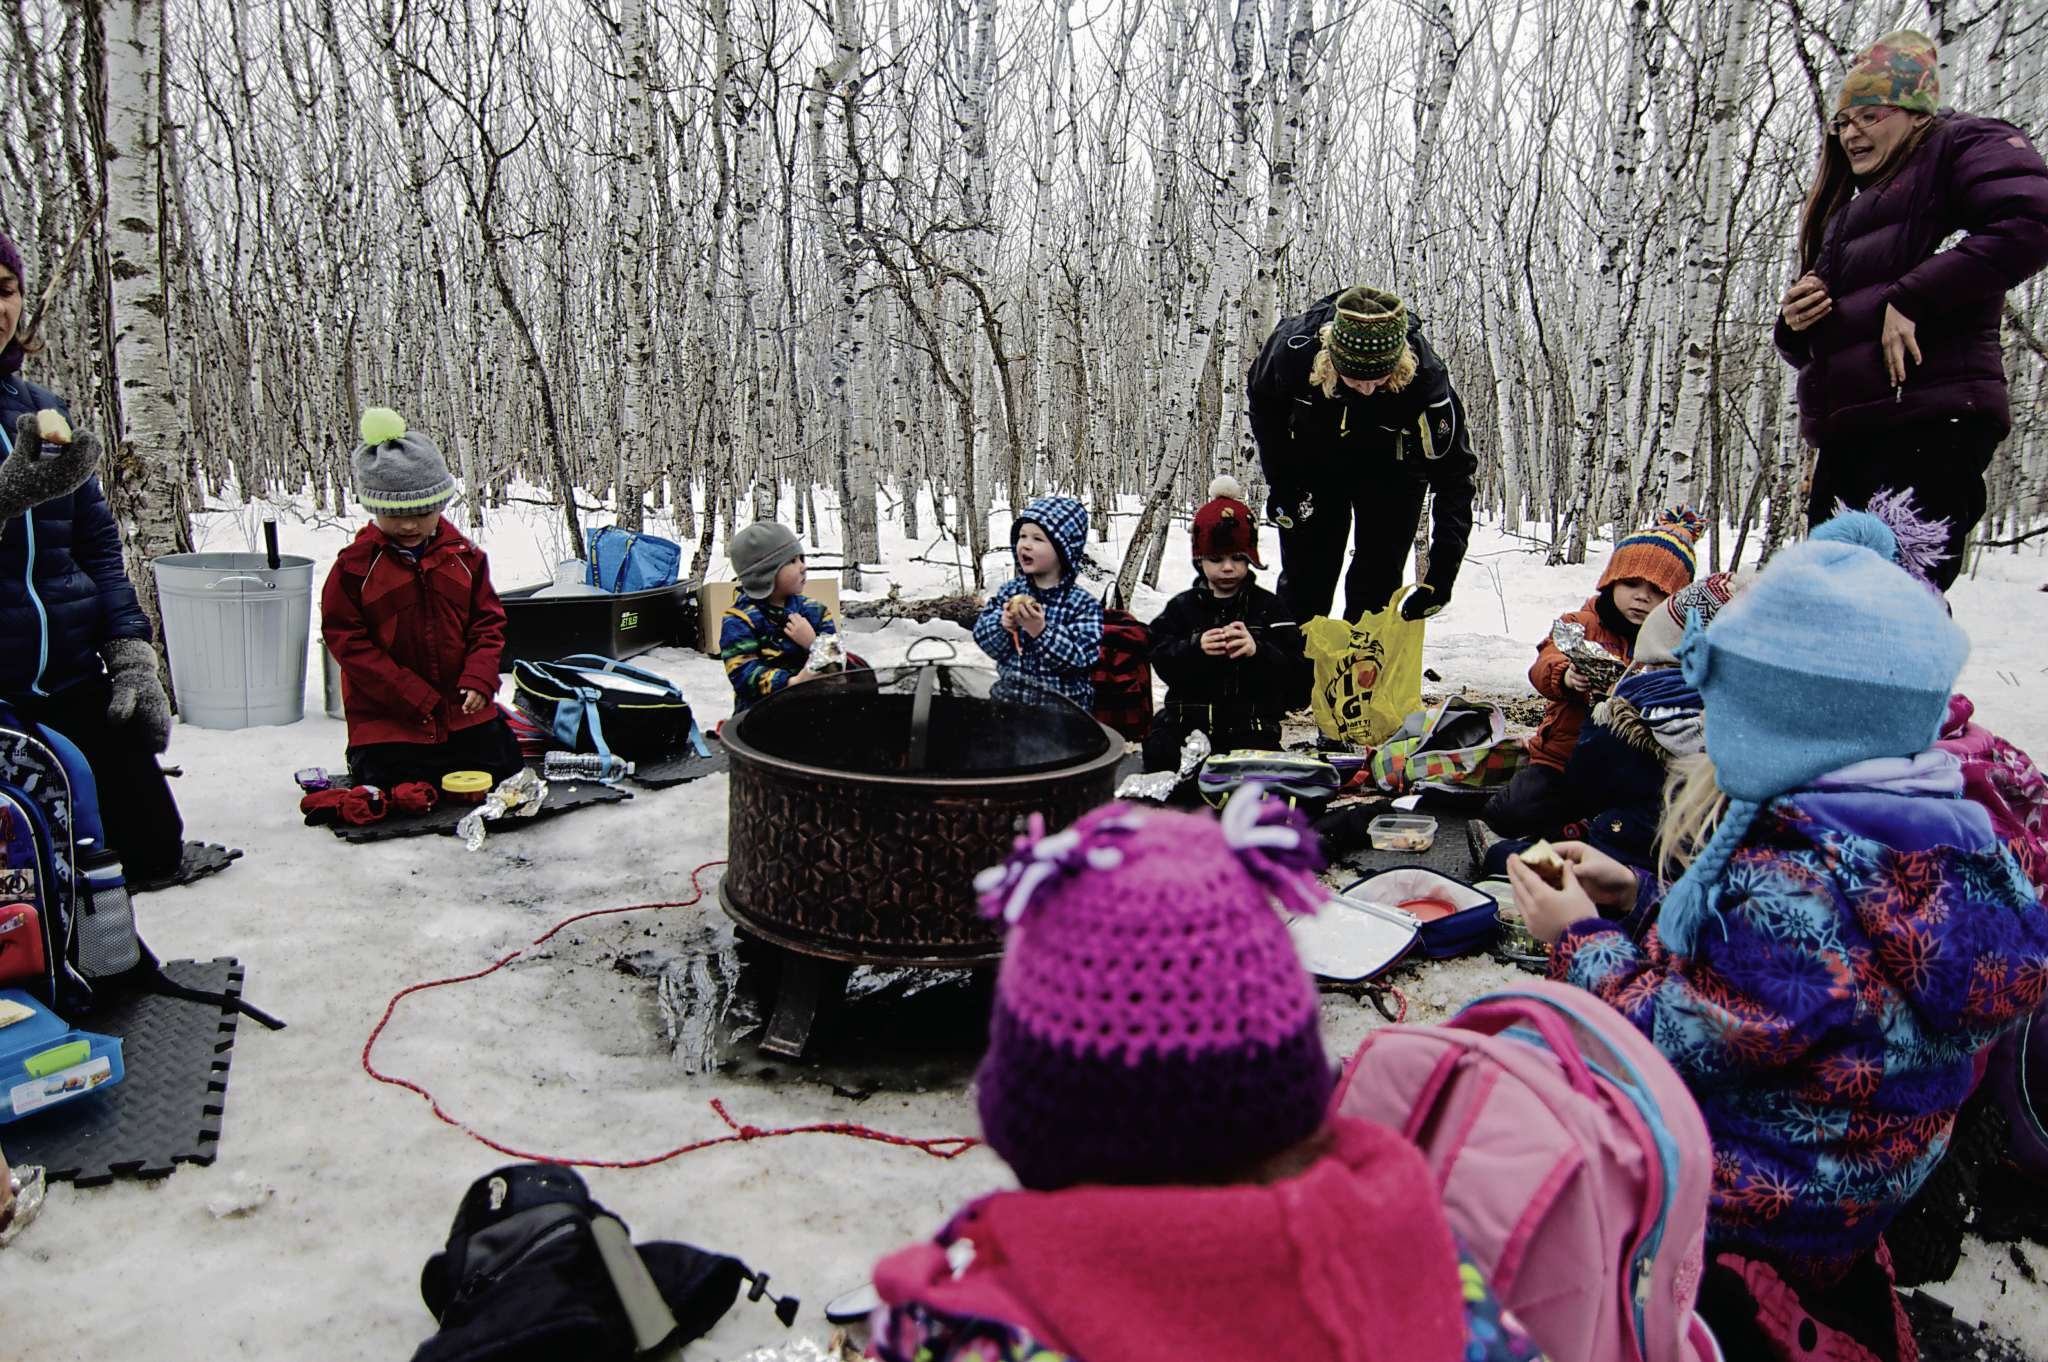 The Field and Forest Nature School does one outdoor session per week in a natural aspen forest.